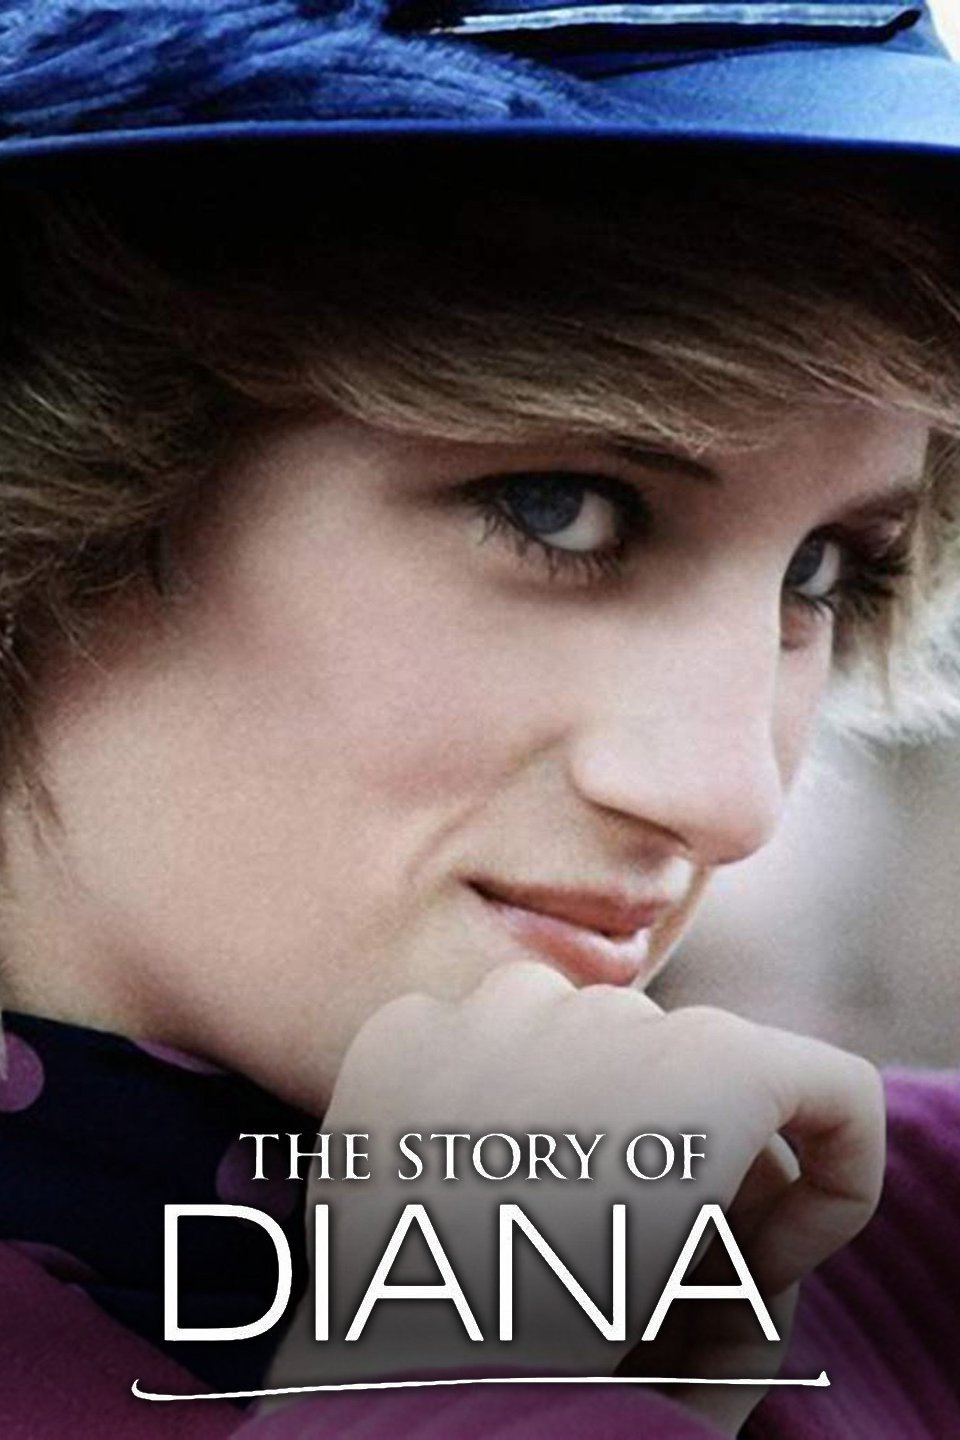 The Story of Diana (2017) 640Kbps 23Fps DD+ 6Ch TR NF Audio SHS